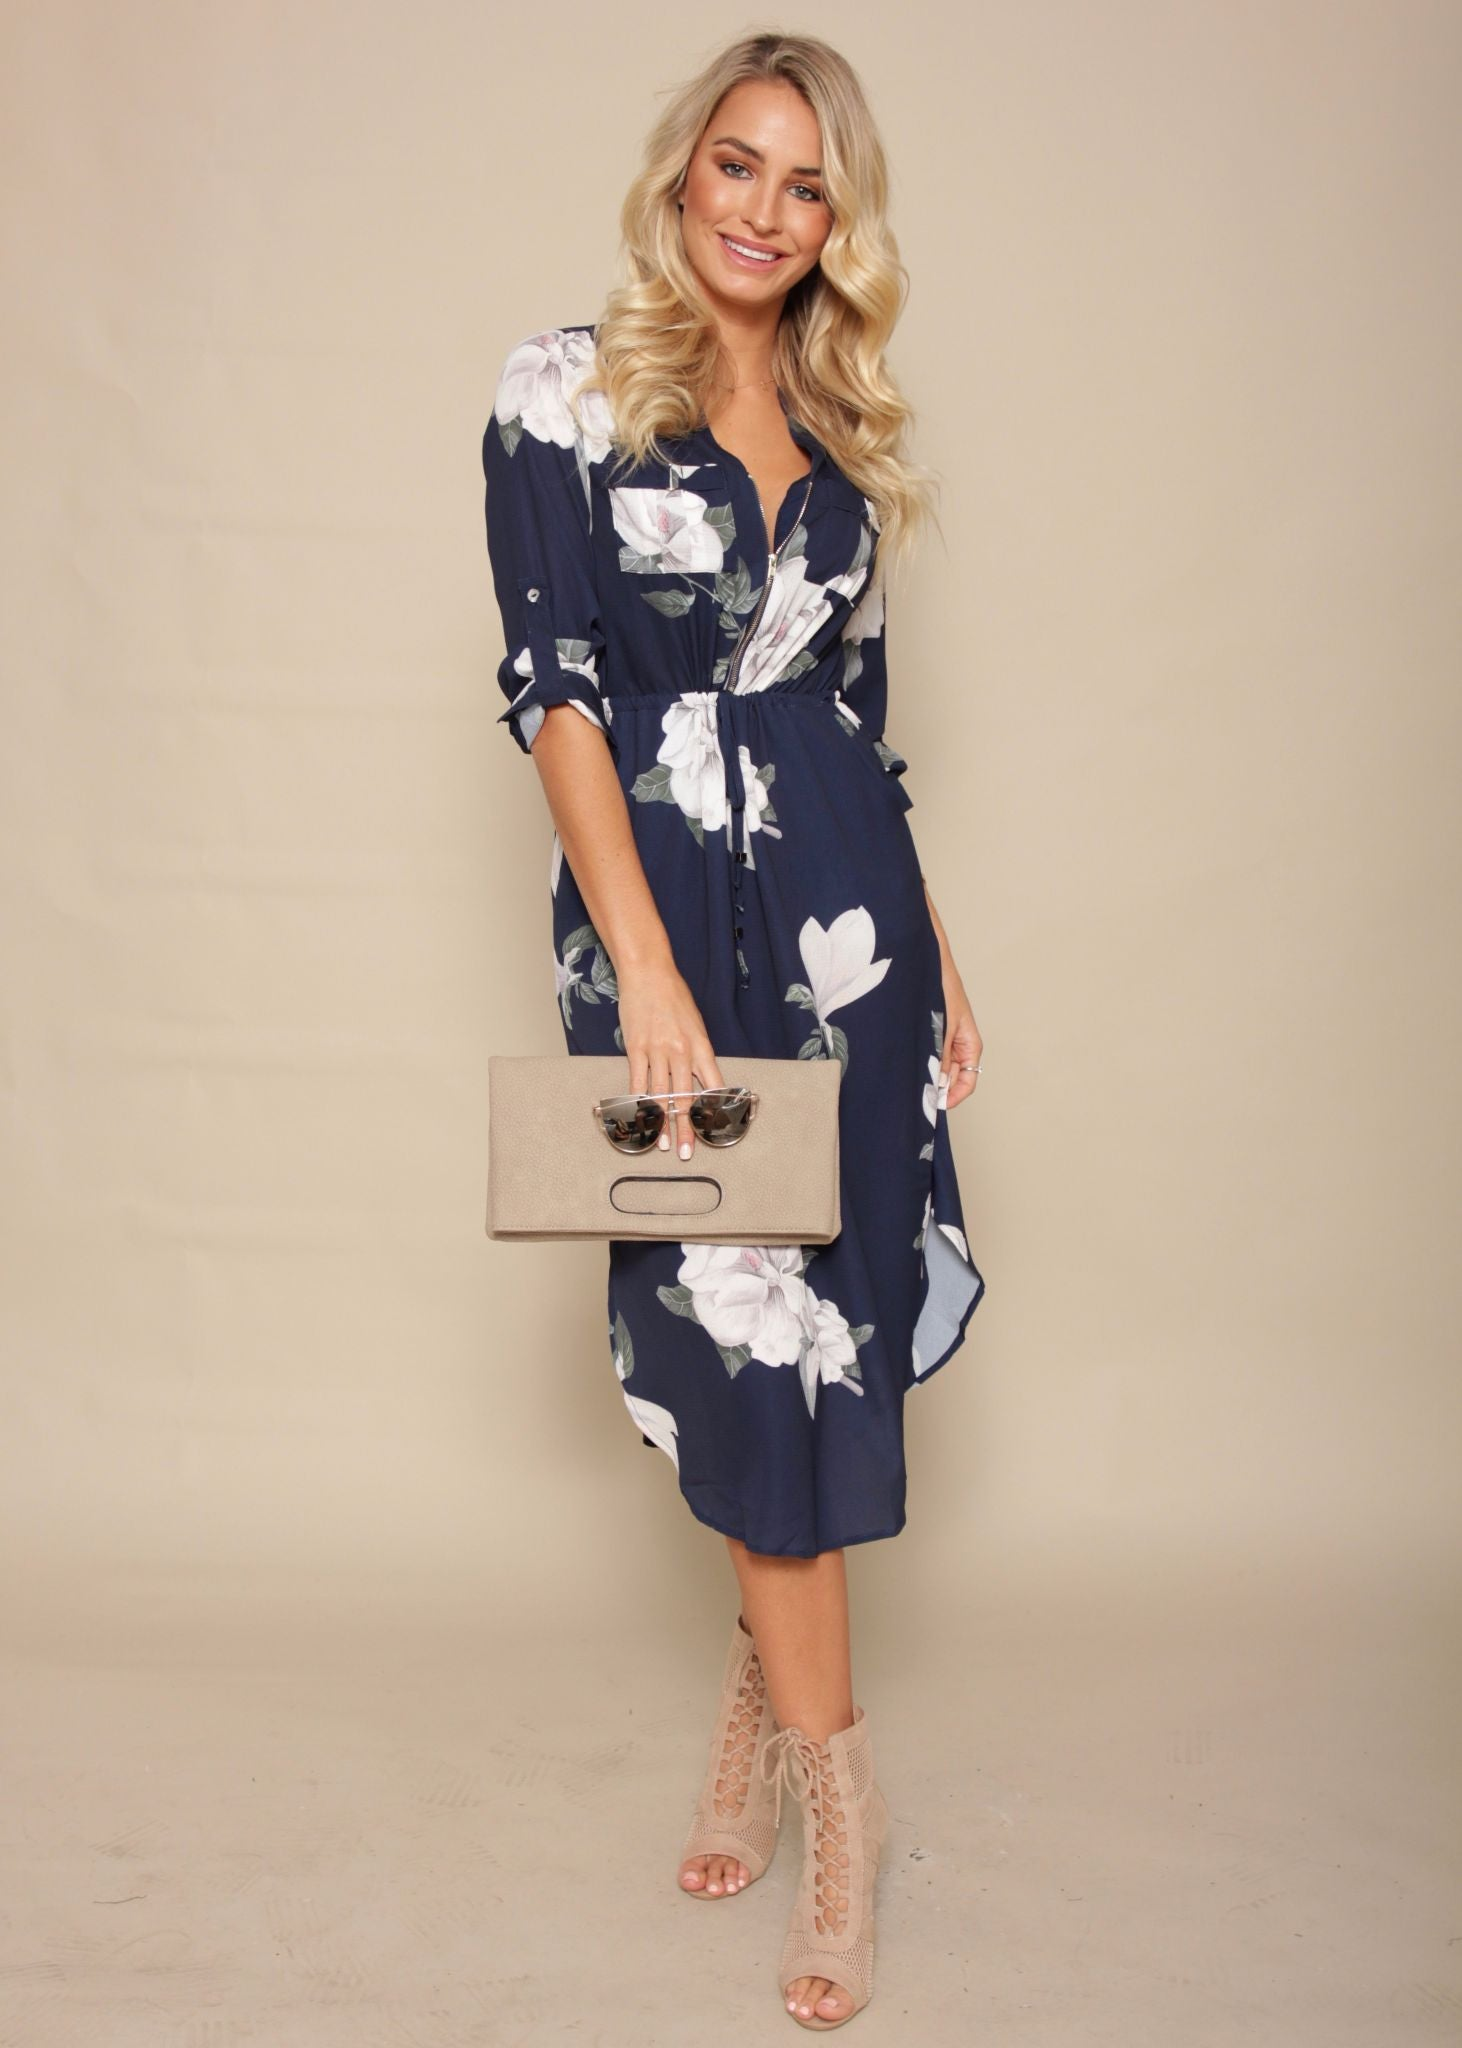 Low Lights Tunic Dress - Navy Springs